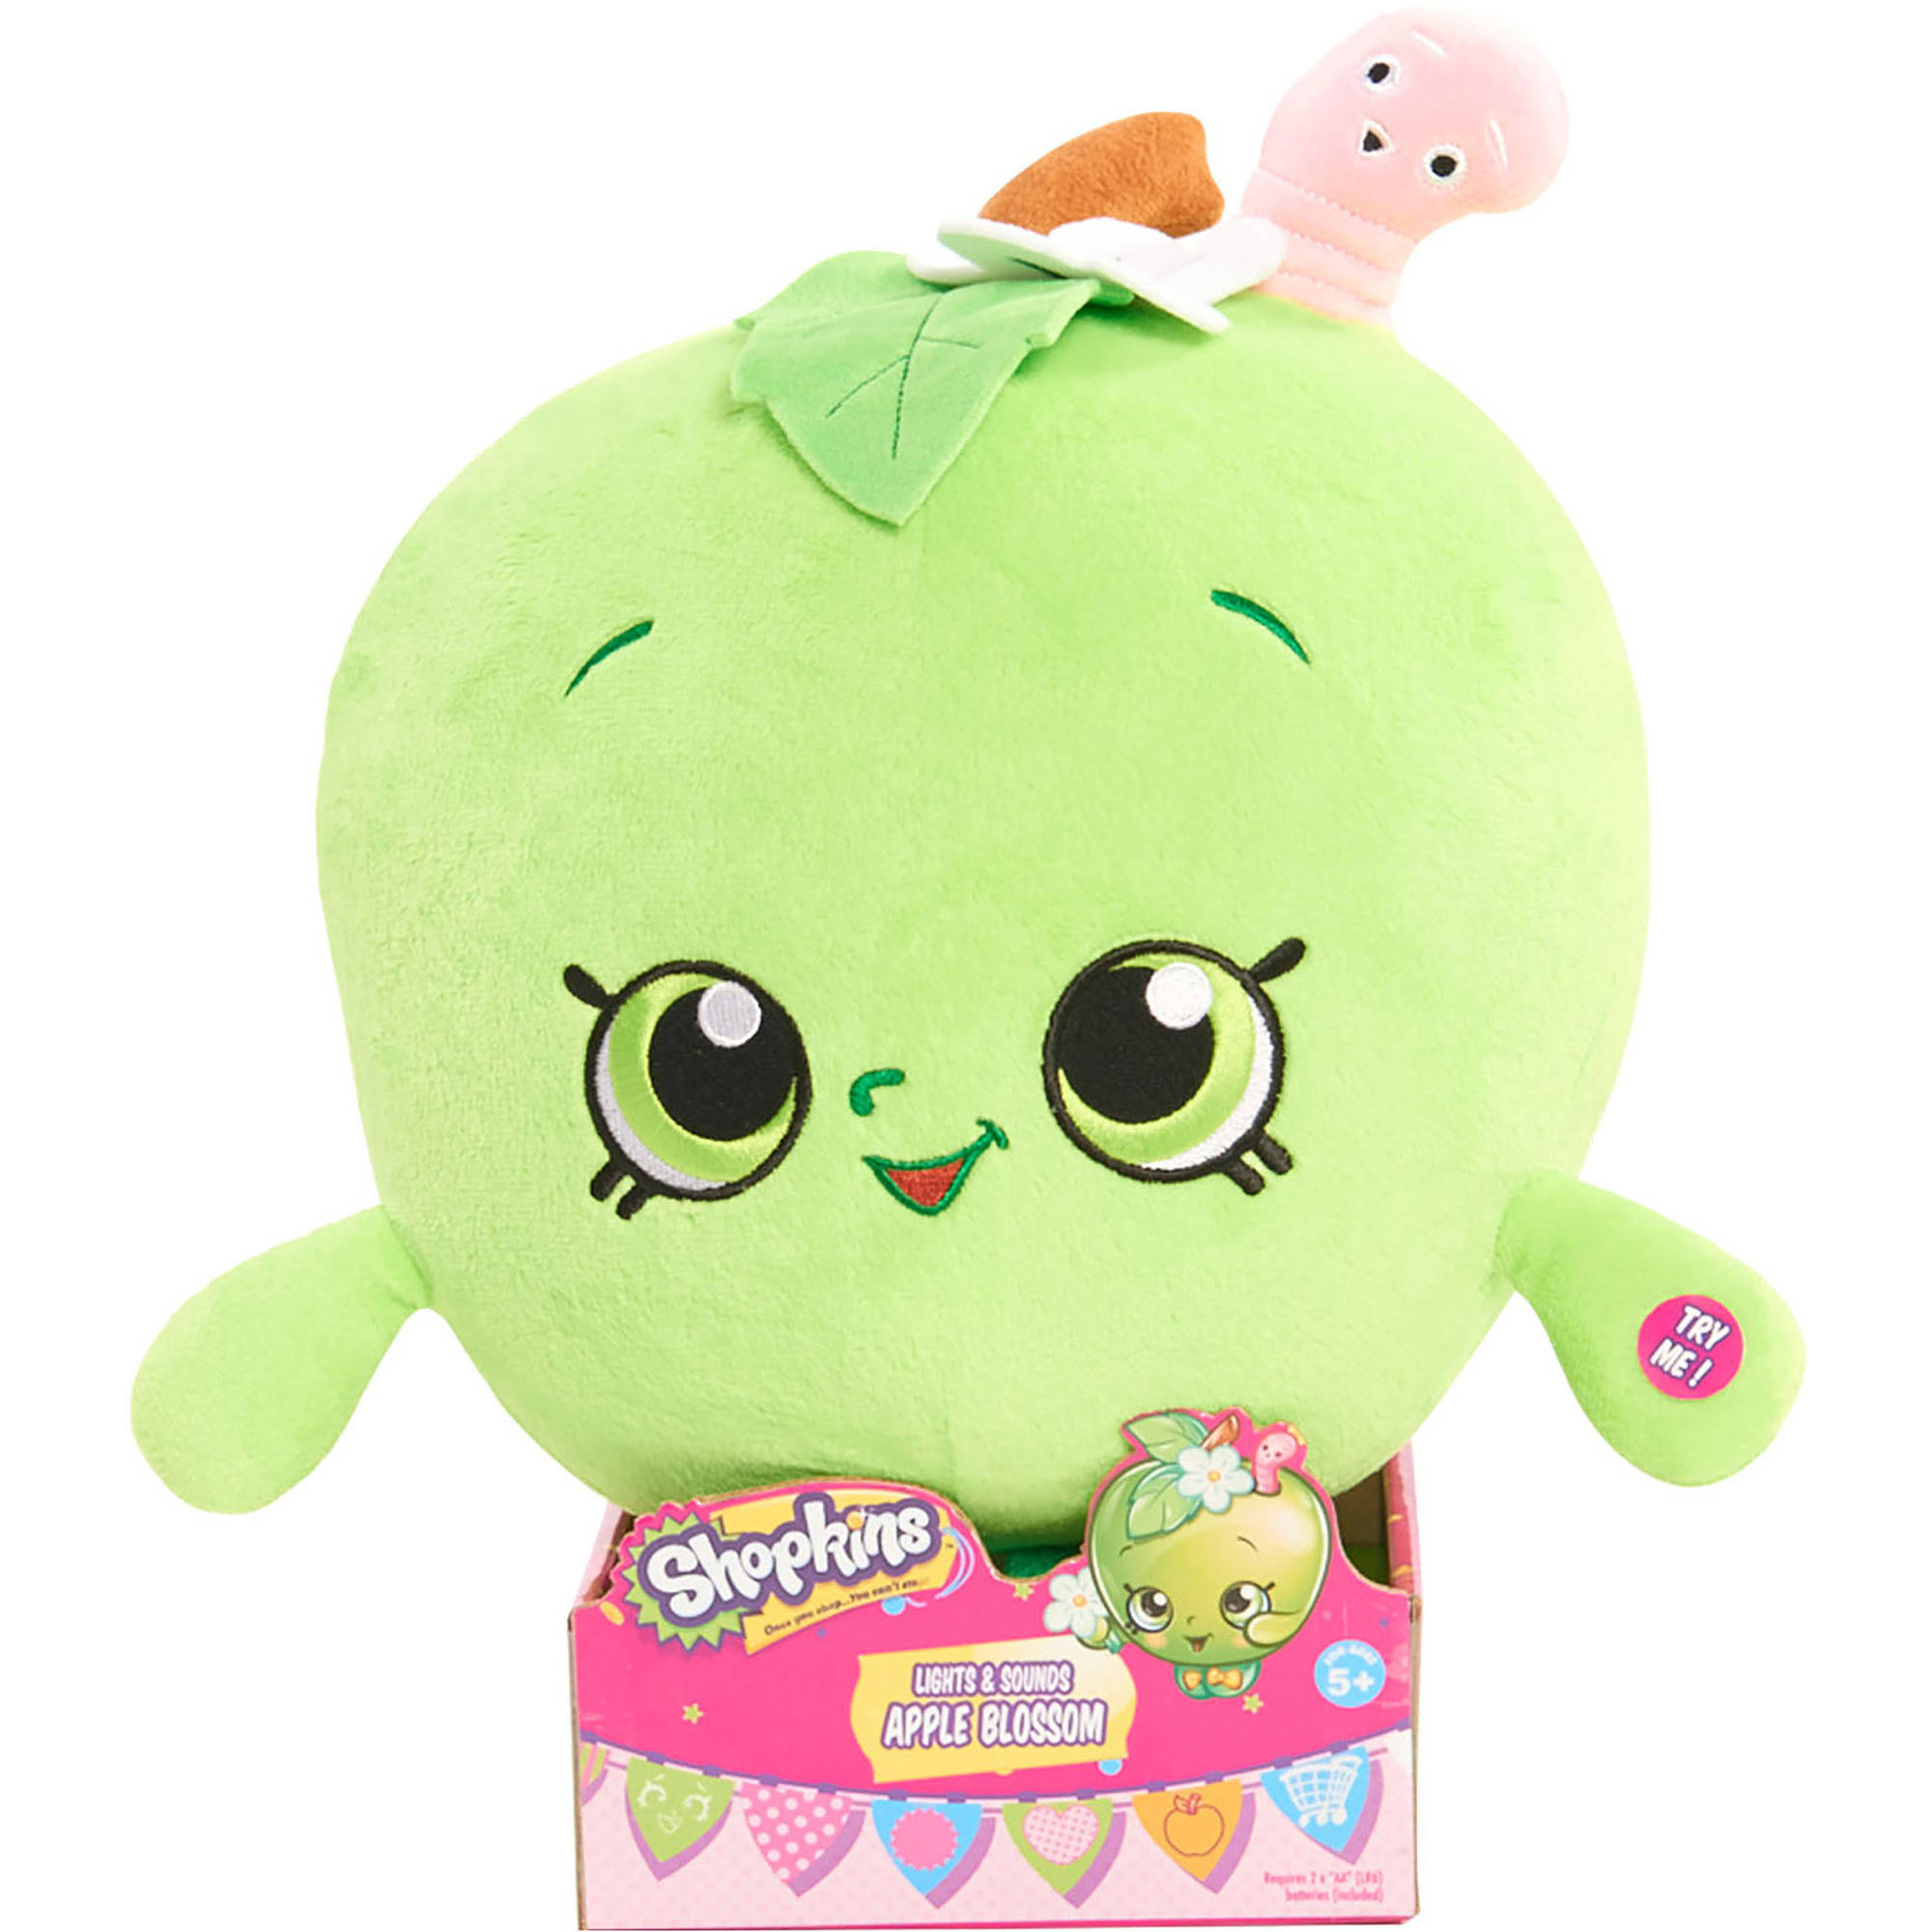 "Shopkins Feature 10"" Apple Blossom Plush"